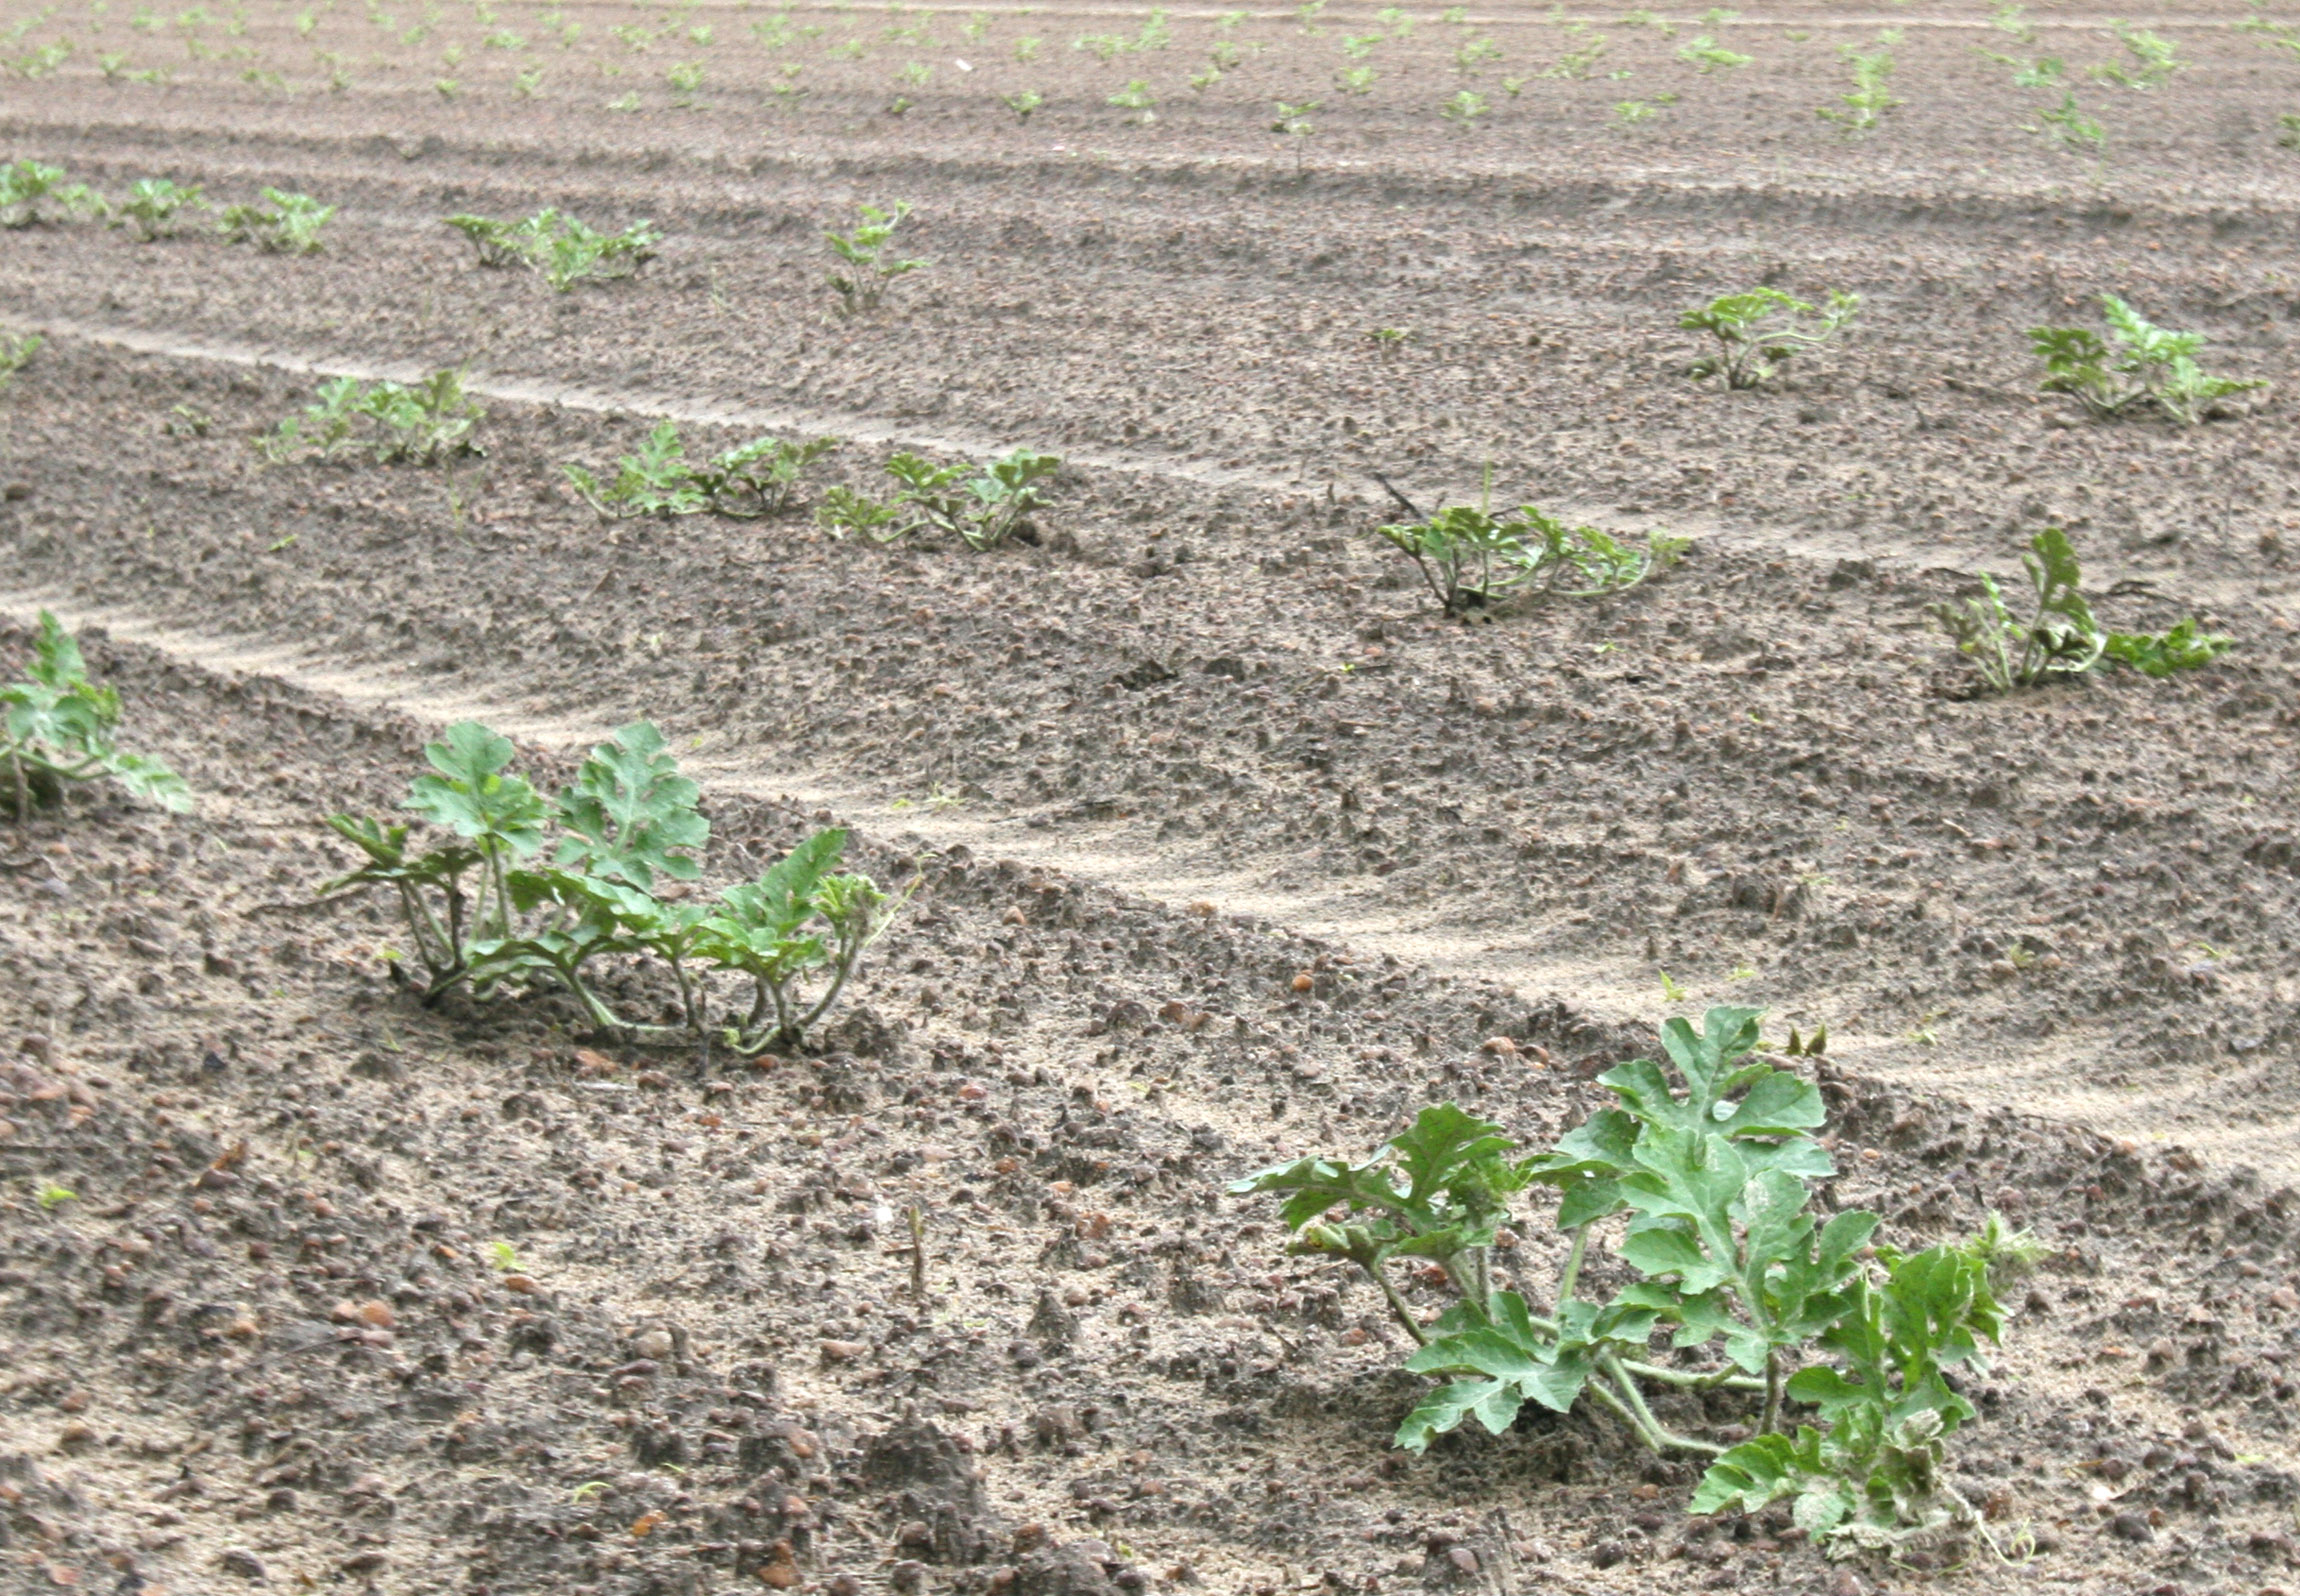 A field of watermelon plants in Ty Ty, Ga. is pictured on Wednesday, April 30. The plants were planted on March 28.